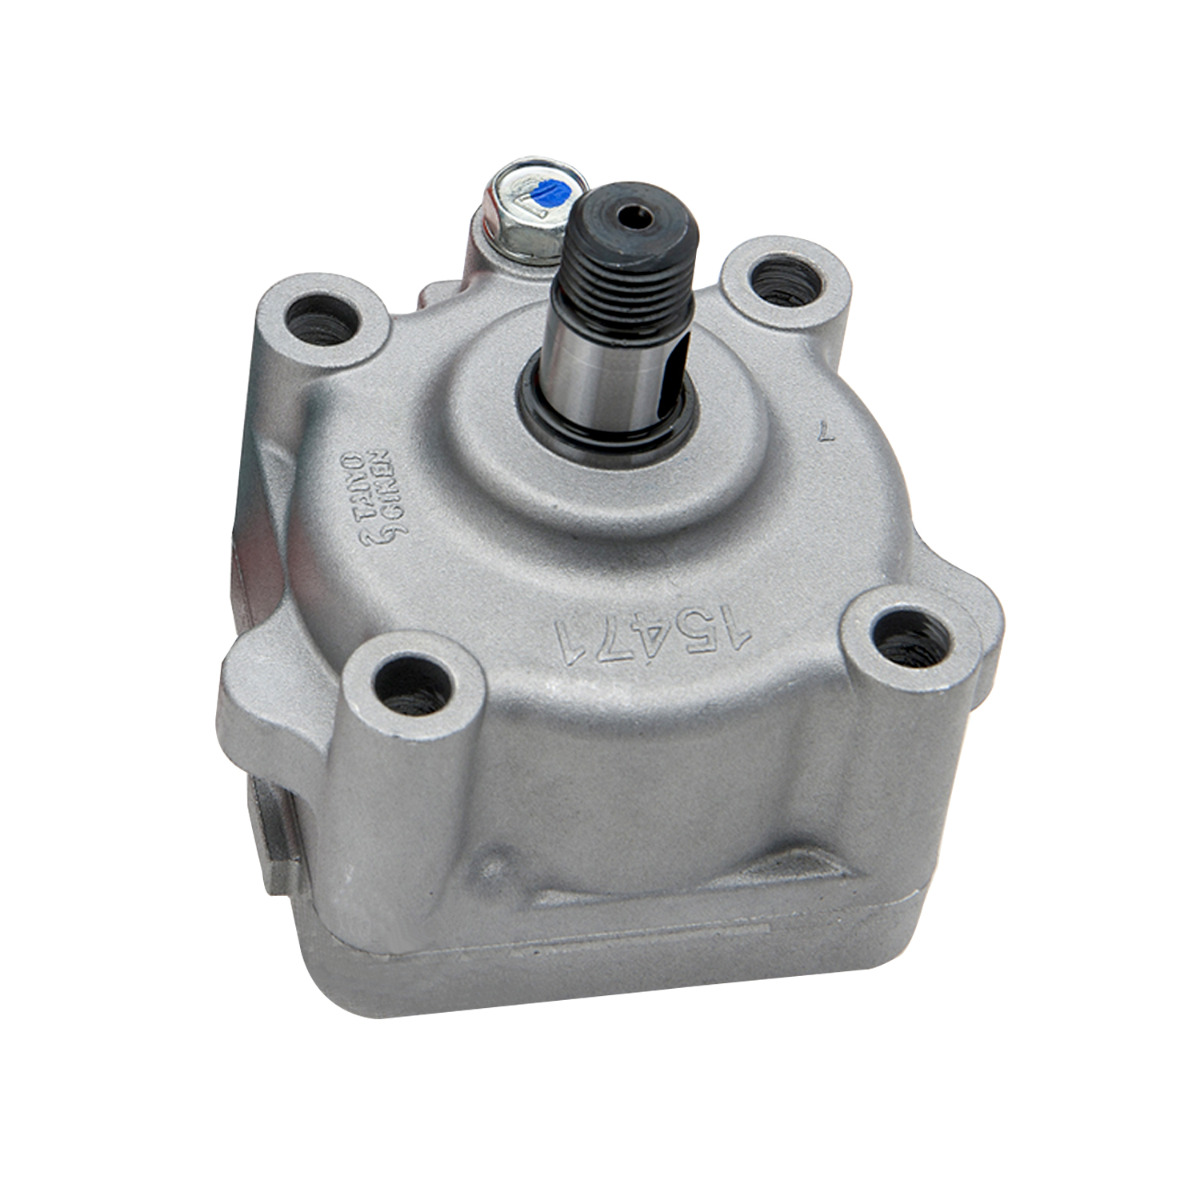 Oil Pump 15471-35013 Compatible with Kubota Wheel Loader R420 R420S R520 R520S